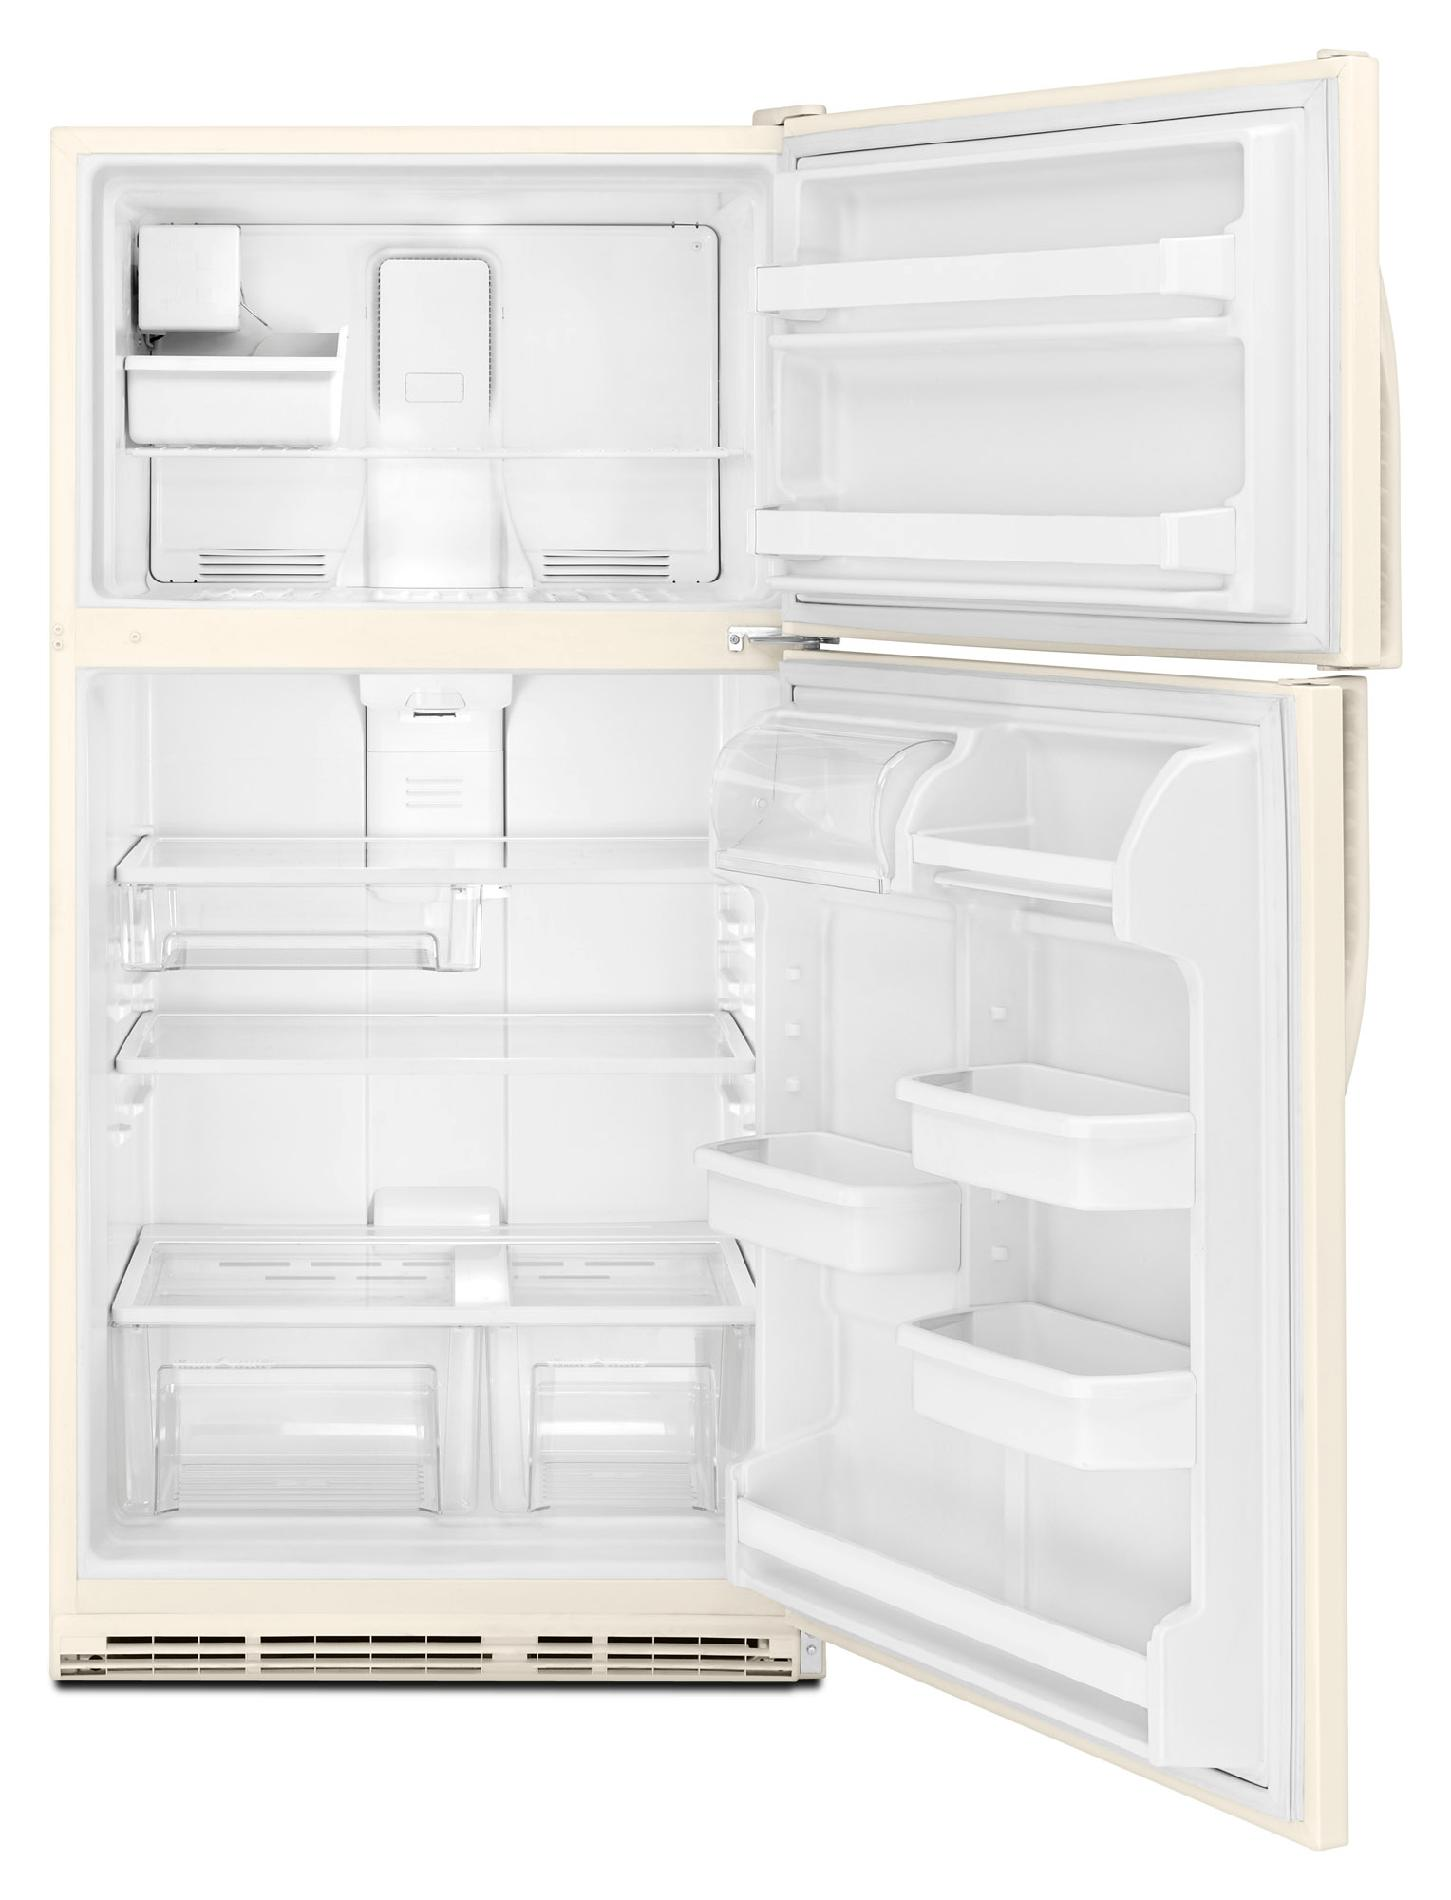 Kenmore 21.0 cu. ft. Top-Freezer Refrigerator w/ Ice Maker - Bisque